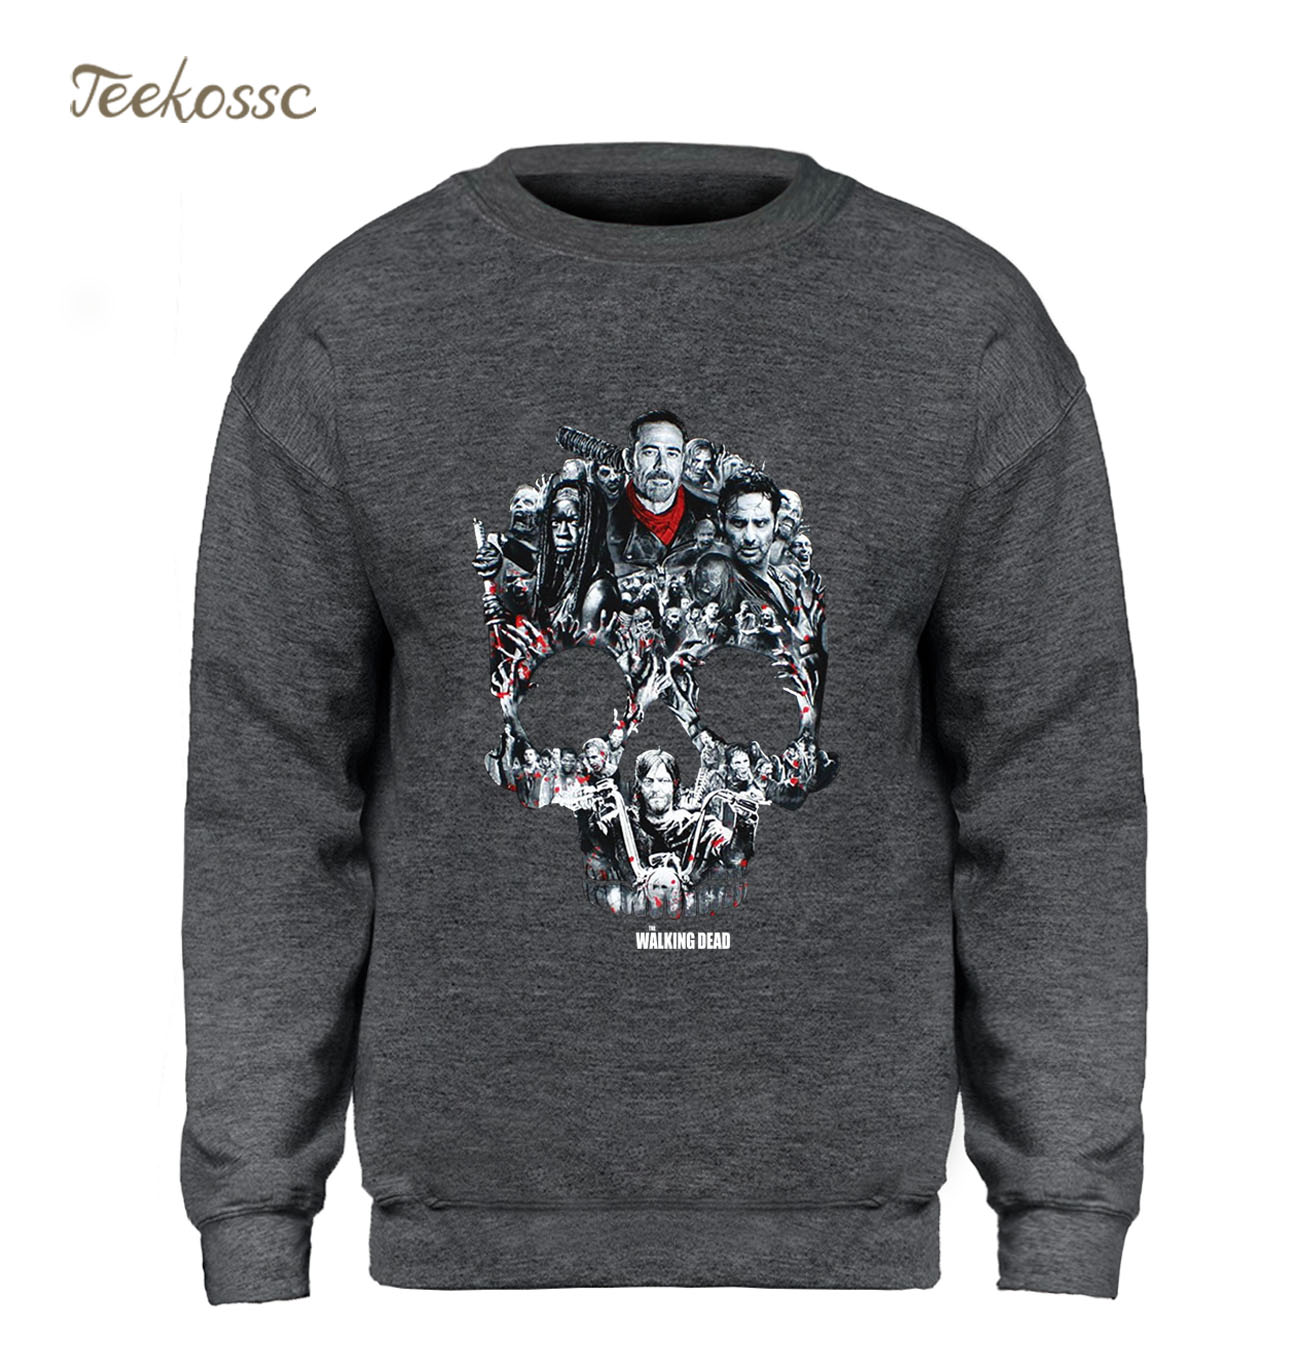 The Walking Dead Sweatshirt Men Skull Hoodies 2018 Winter Autumn Hip Hop Sportswear Brand Clothing Black Gray Sweatshirts Homme